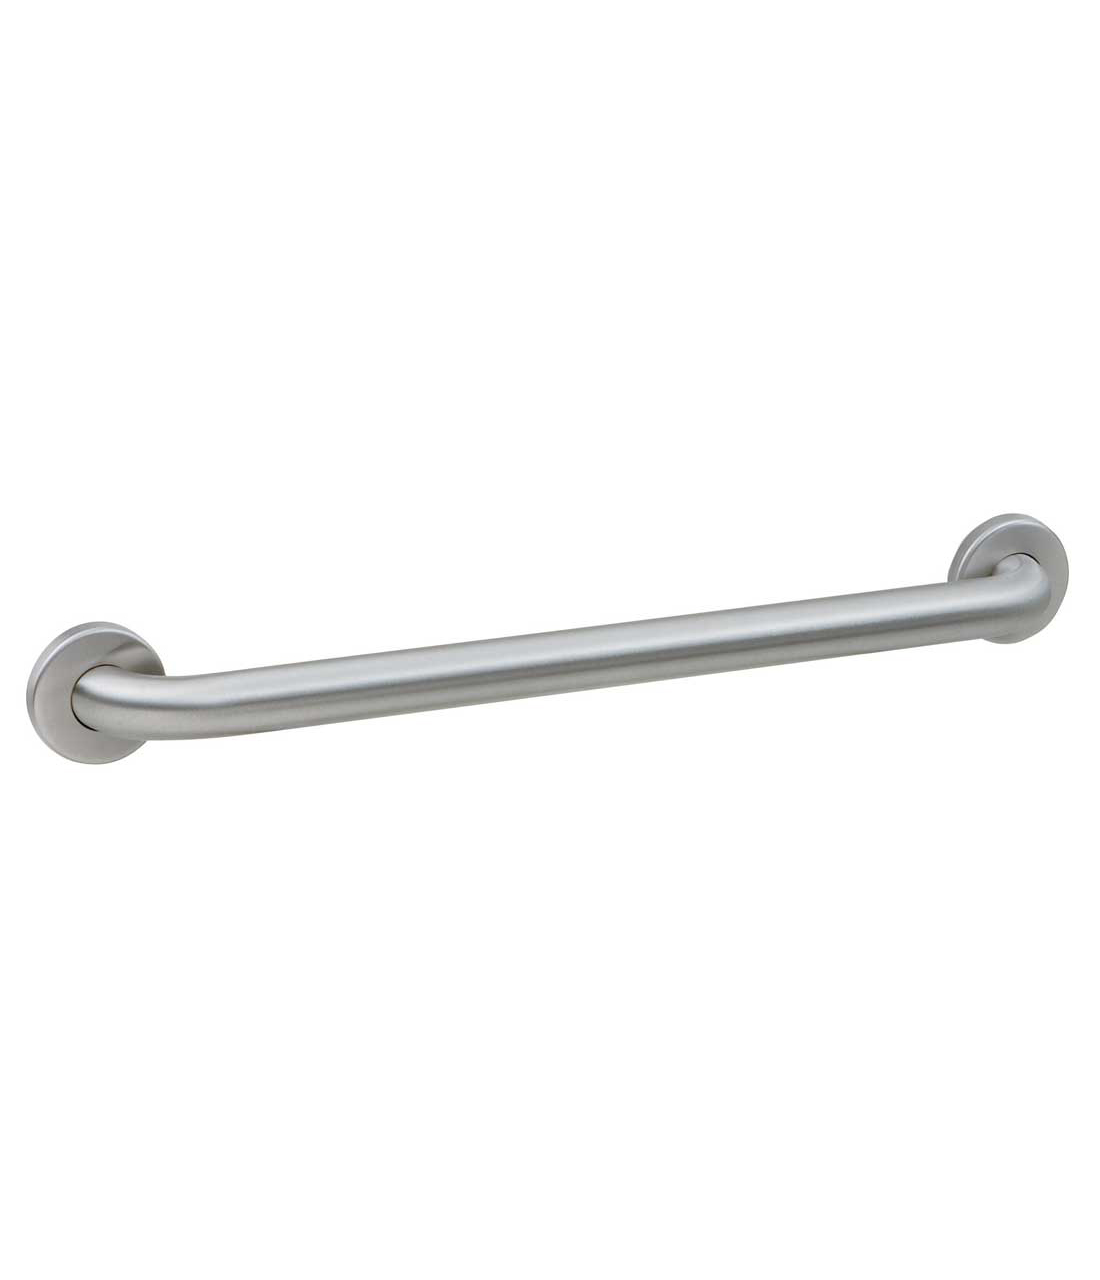 Jinxin AISI 304 Straight Grab Bar B-3001